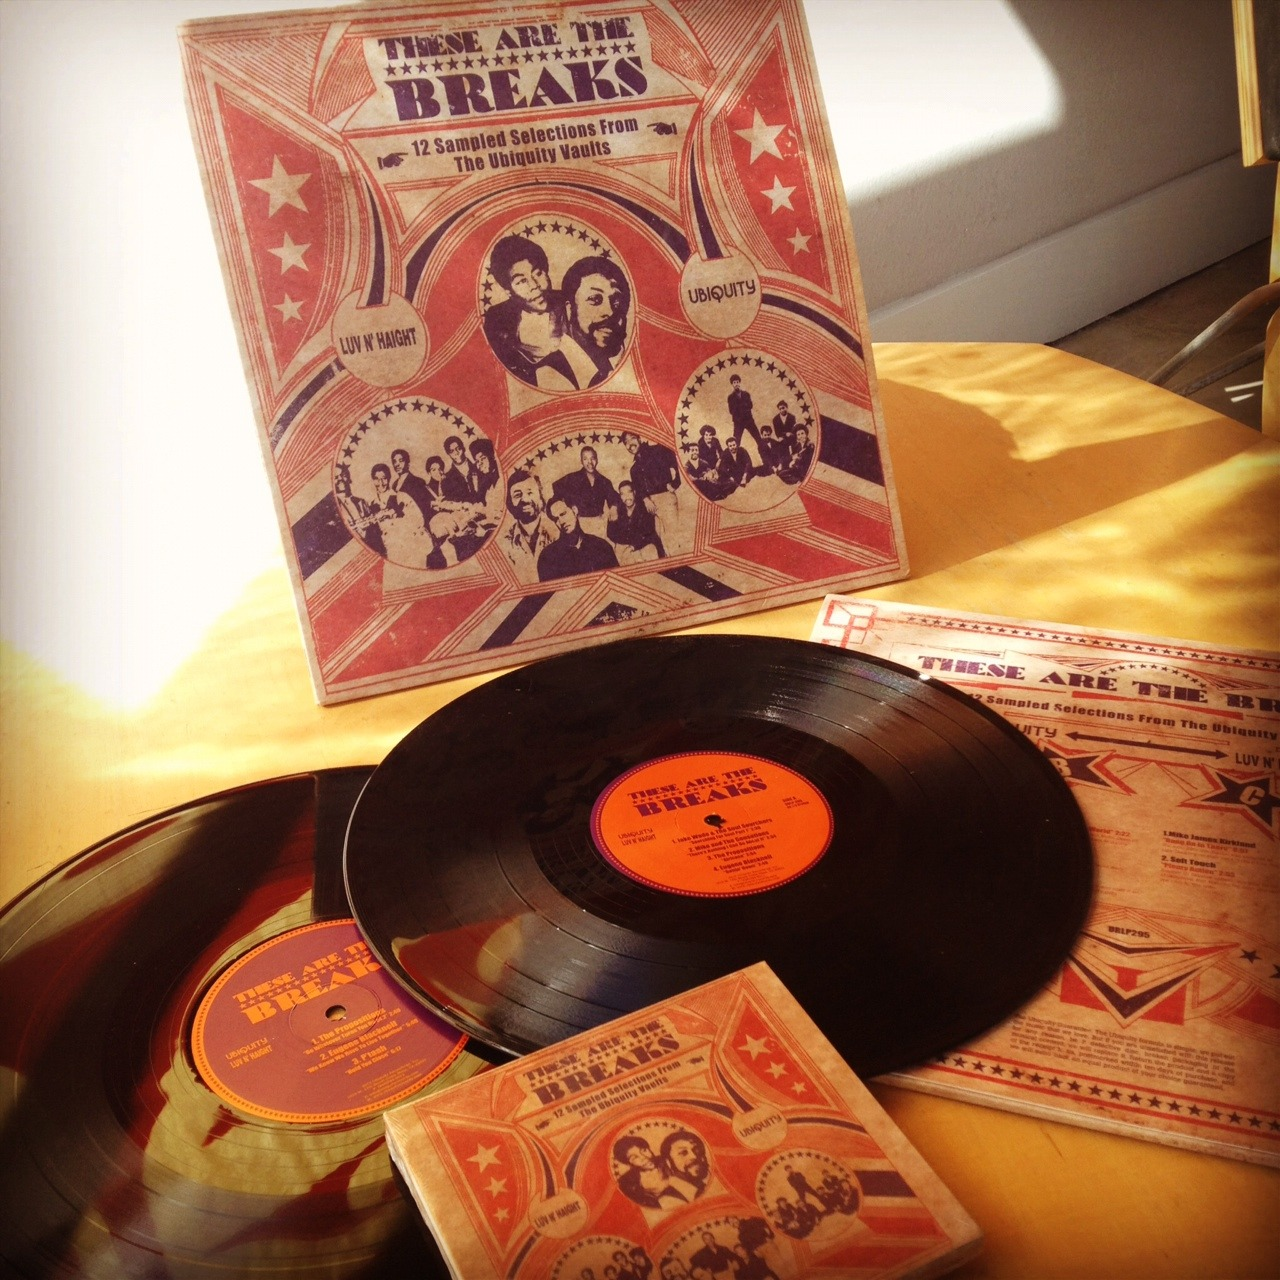 "Now Available for Pre-Order: These Are The Breaks, A collection of 12 original tracks from the Luv N' Haight and Ubiquity catalogs that have been sampled by well-known artists ranging in diversity from Beyoncé, Beck, Lupe Fiasco and J Dilla. Click here to Pre-Order, use coupon code ""EARLYBIRD"" to save 15%."